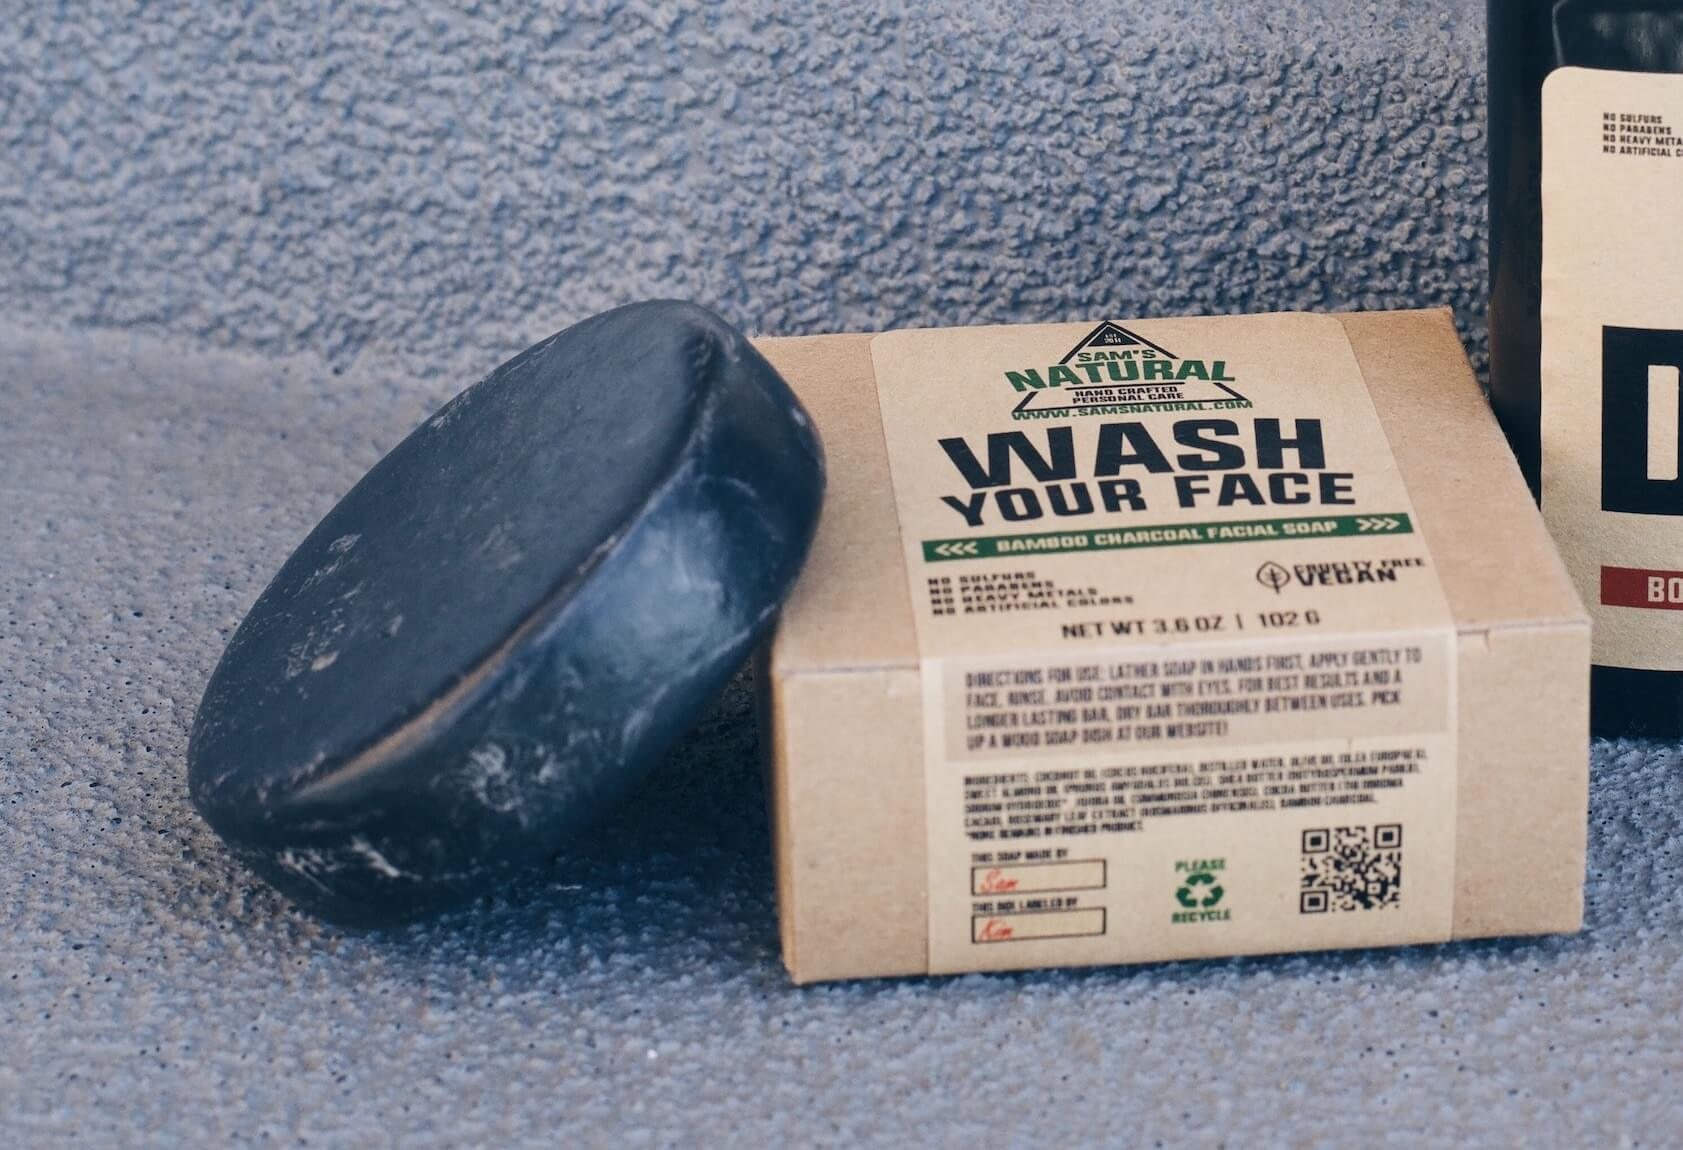 The soap bar looks a bit like a hockey puck. (It's half used in the pic)